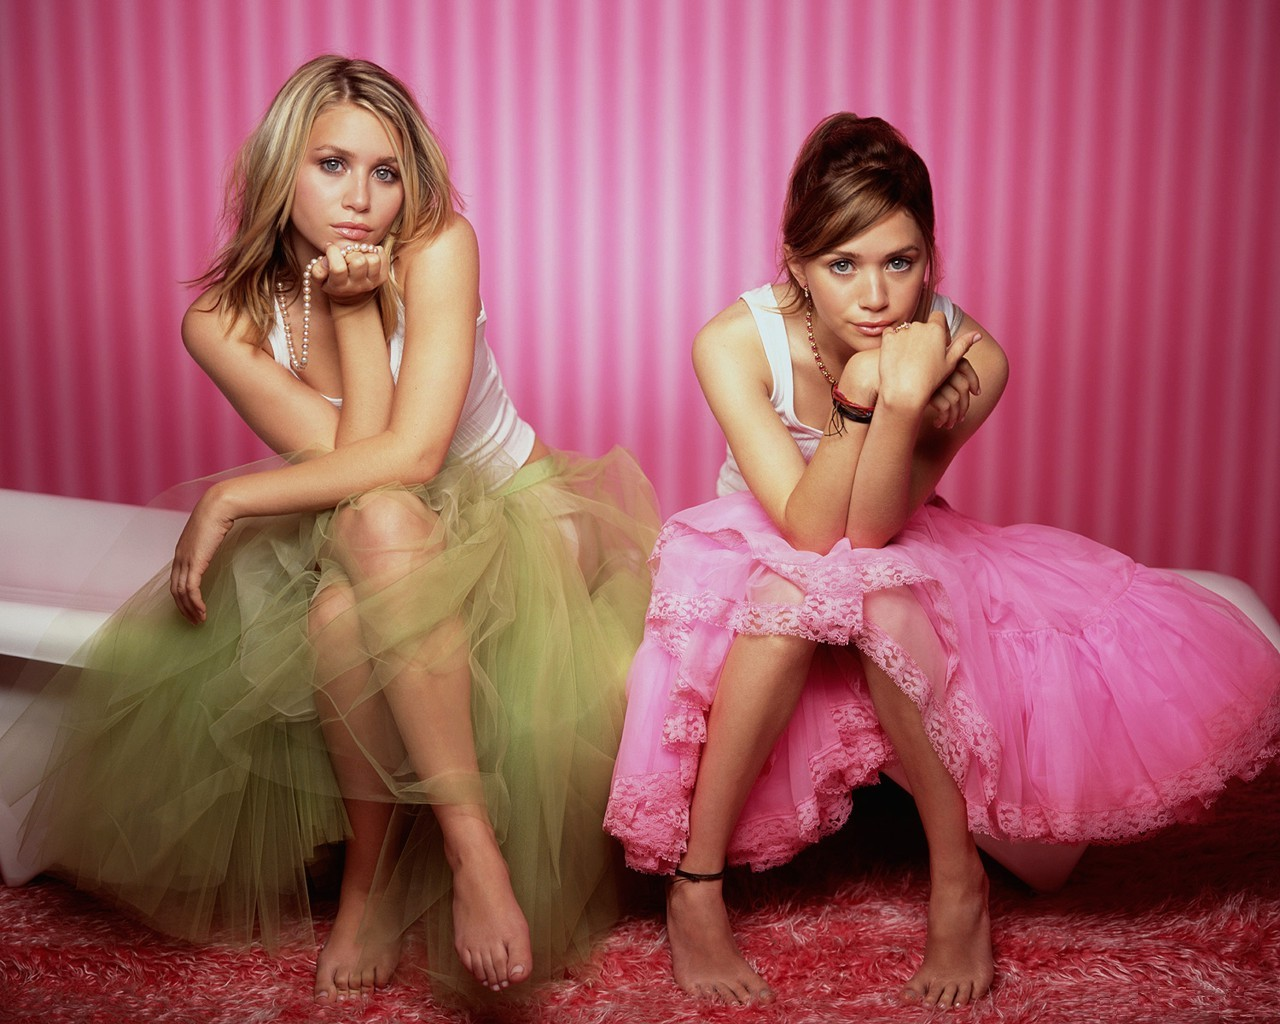 Sorry, that Mary kate and ashley olsen twins hot seems